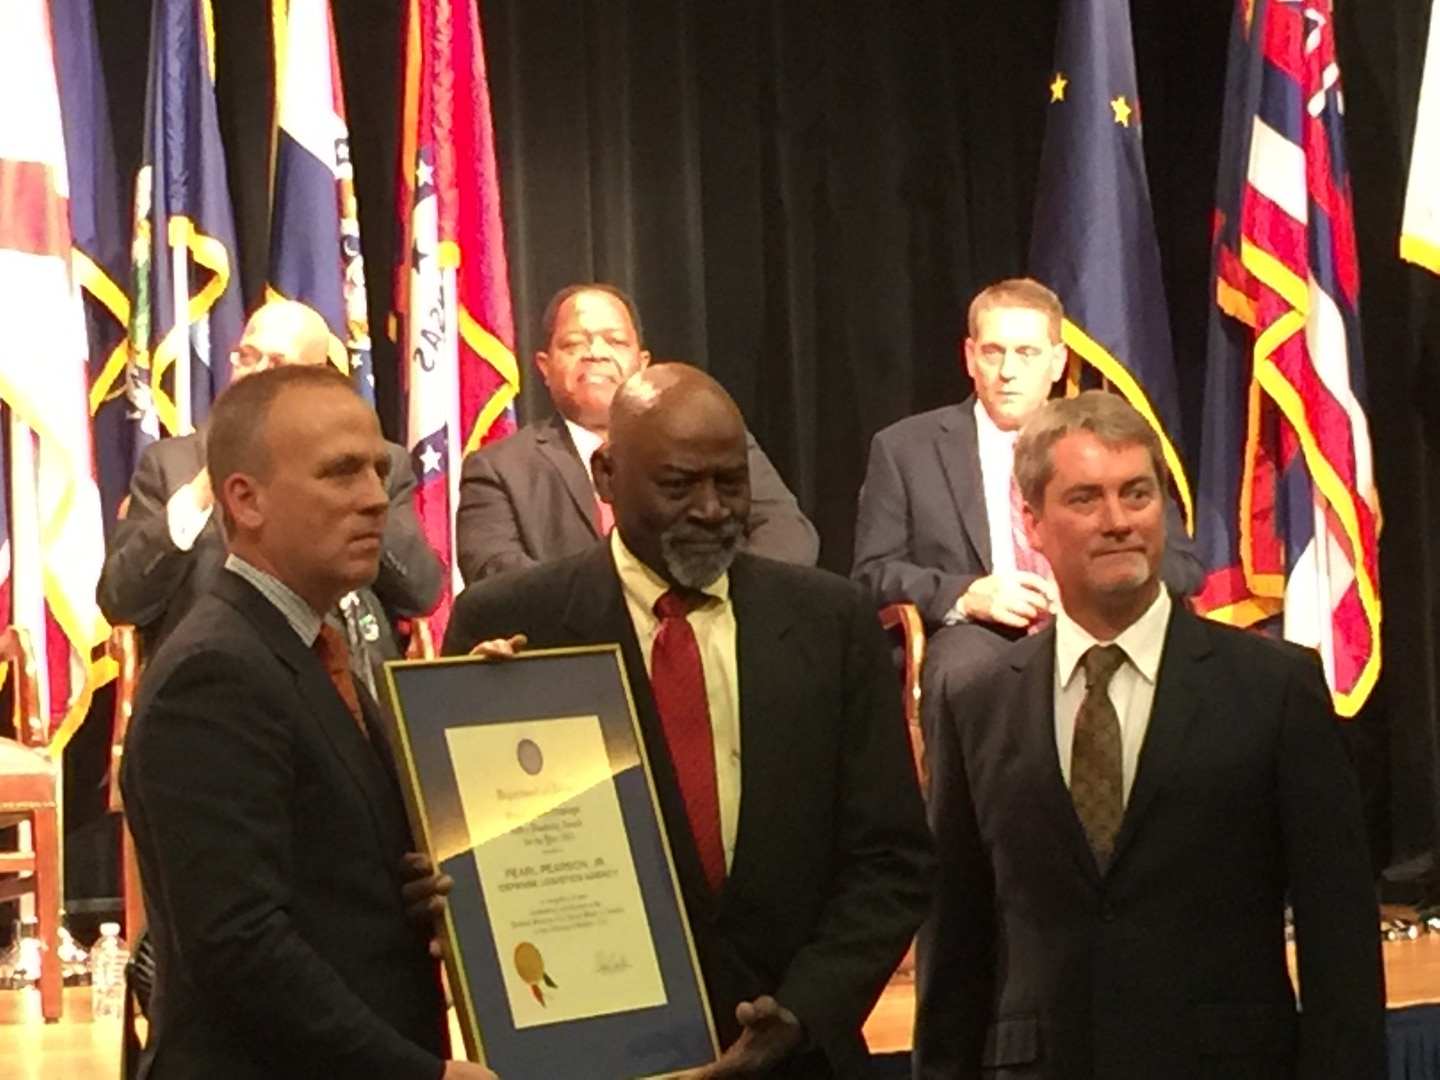 Pearl Pearson, Jr., (center), was presented with the 2015 Outstanding DoD Employee with a Disability Award by Brad R. Carson, (left) Undersecretary of Defense for Personnel and Readiness, and Terry Phillips, (right) Preservation, Packaging, Packing and Marking Branch Chief at the 35th annual Department of Defense Disability Awards ceremony held in the Pentagon Auditorium on Oct. 29.